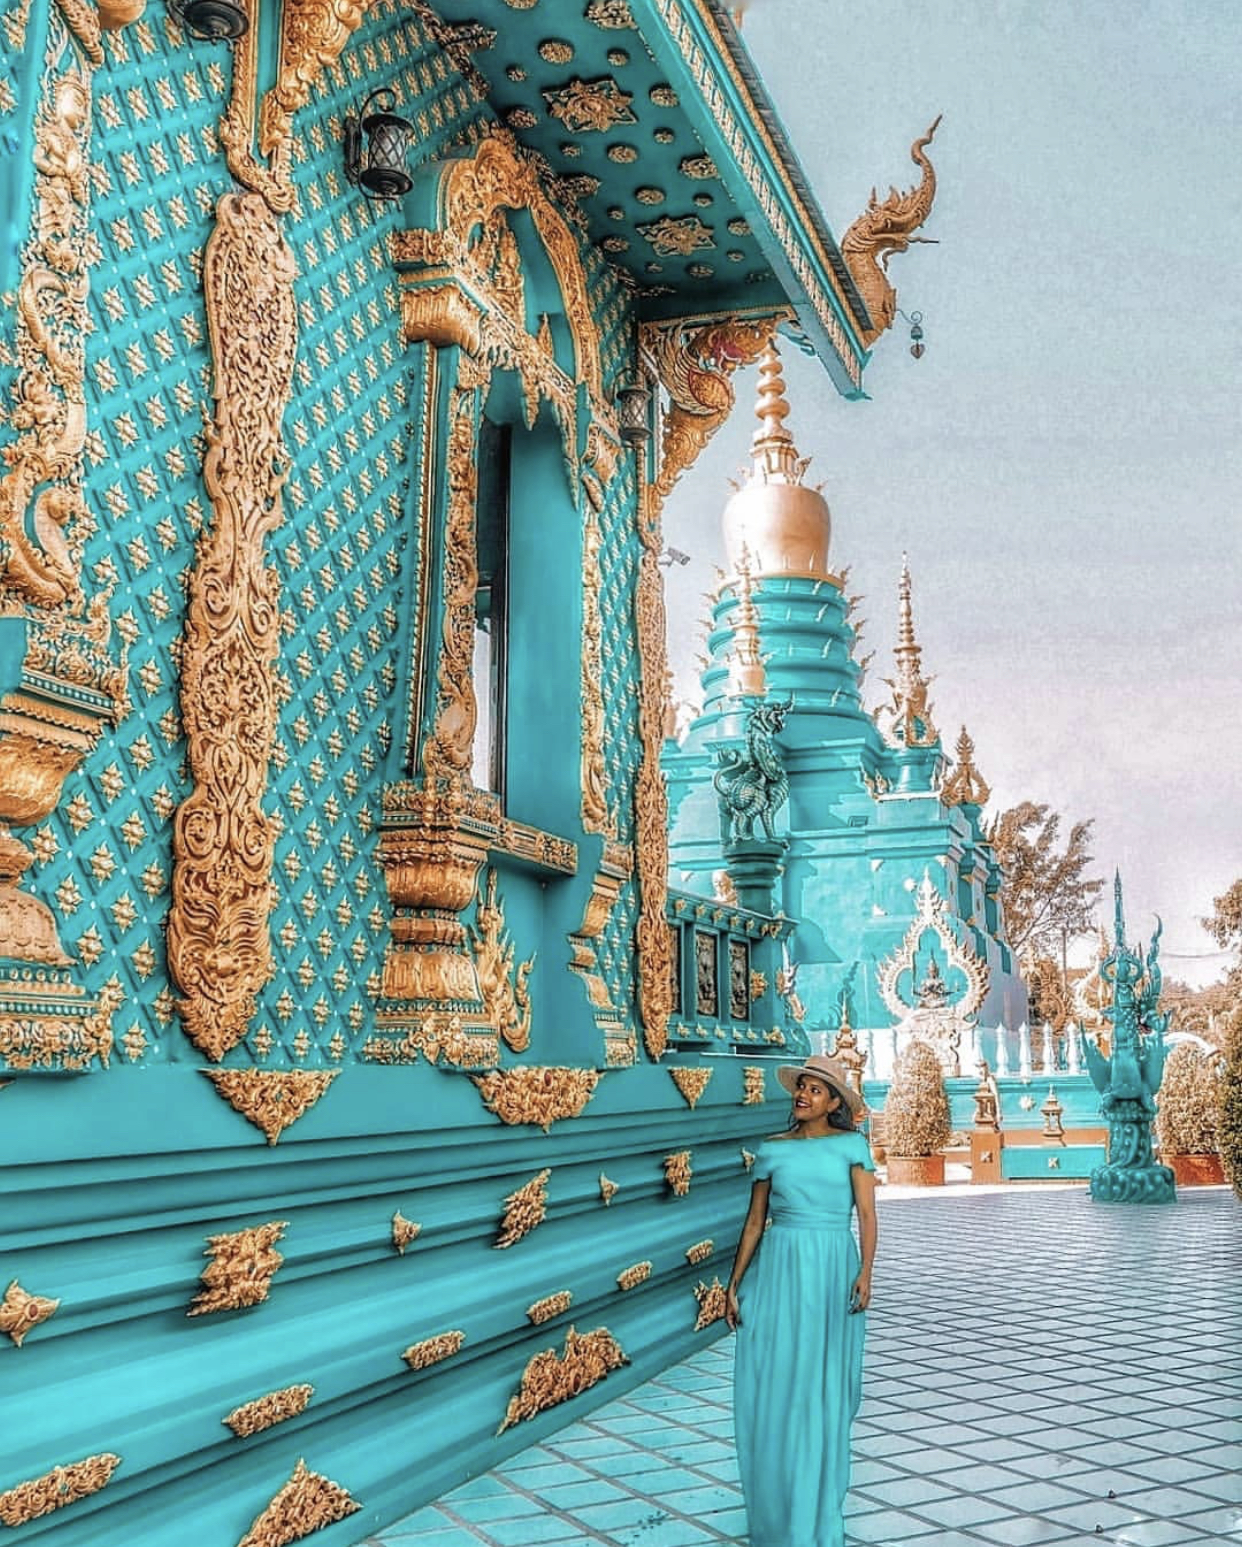 "Deeva @ The Blue Temple in Thailand - ""There are reasons we don't see the world in black and white"" IG: @deevatheexplorer"